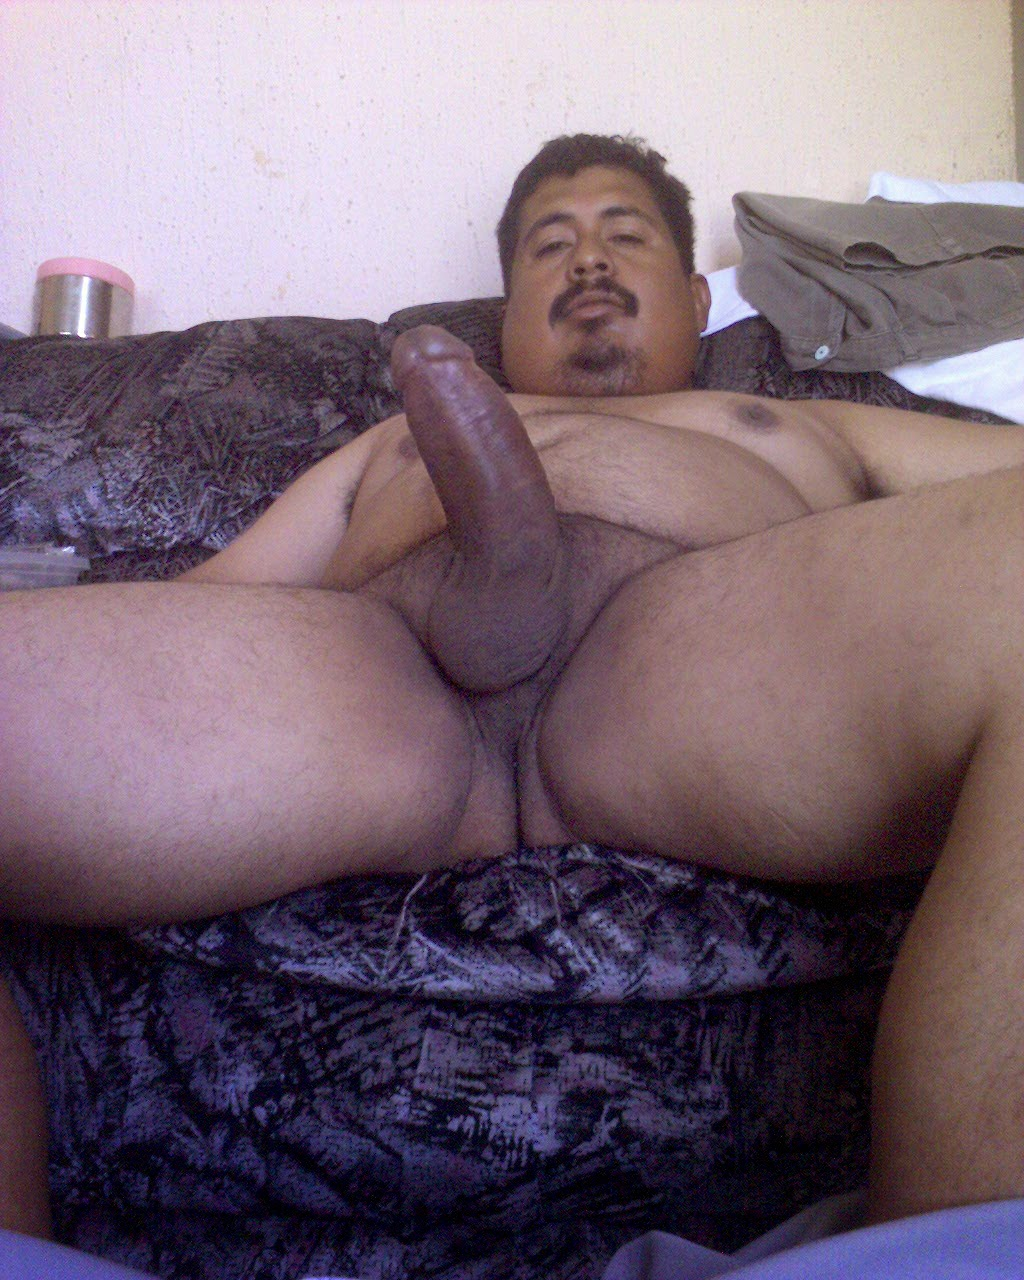 Filled with cum gay